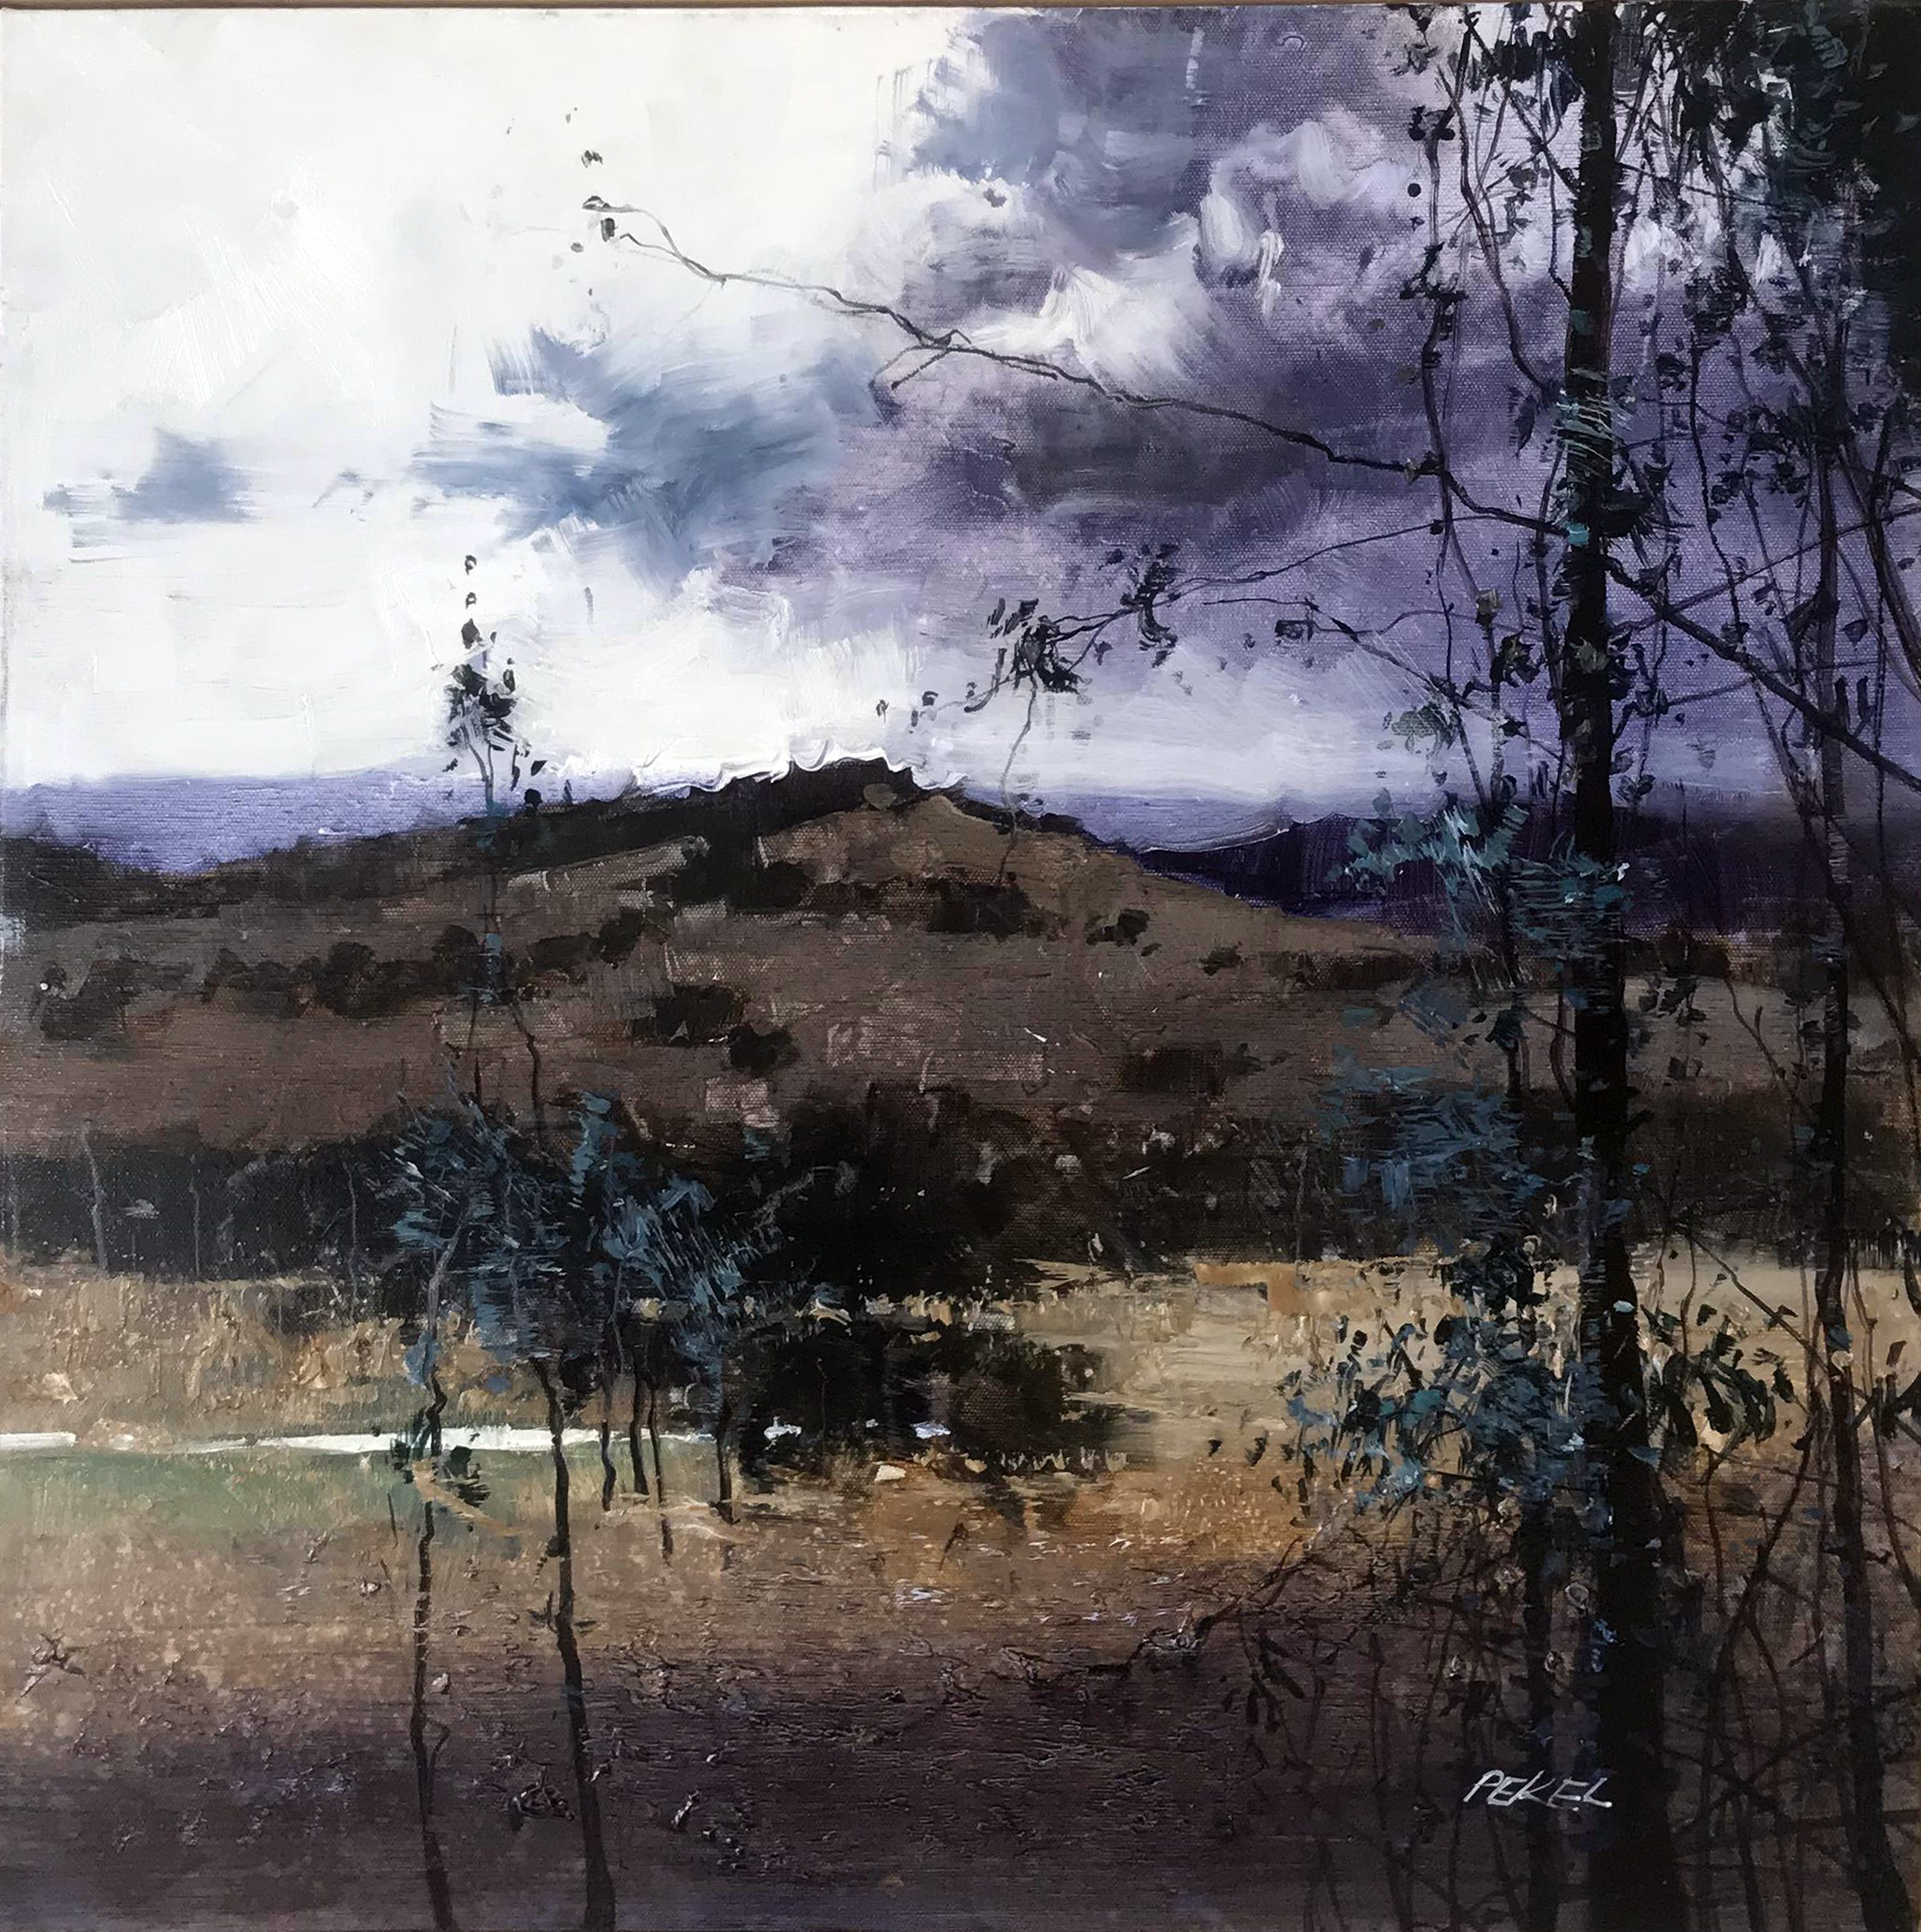 Herman Pekel, Snowy Mountains 5 oil on canvas, 61 x 61 cm, available